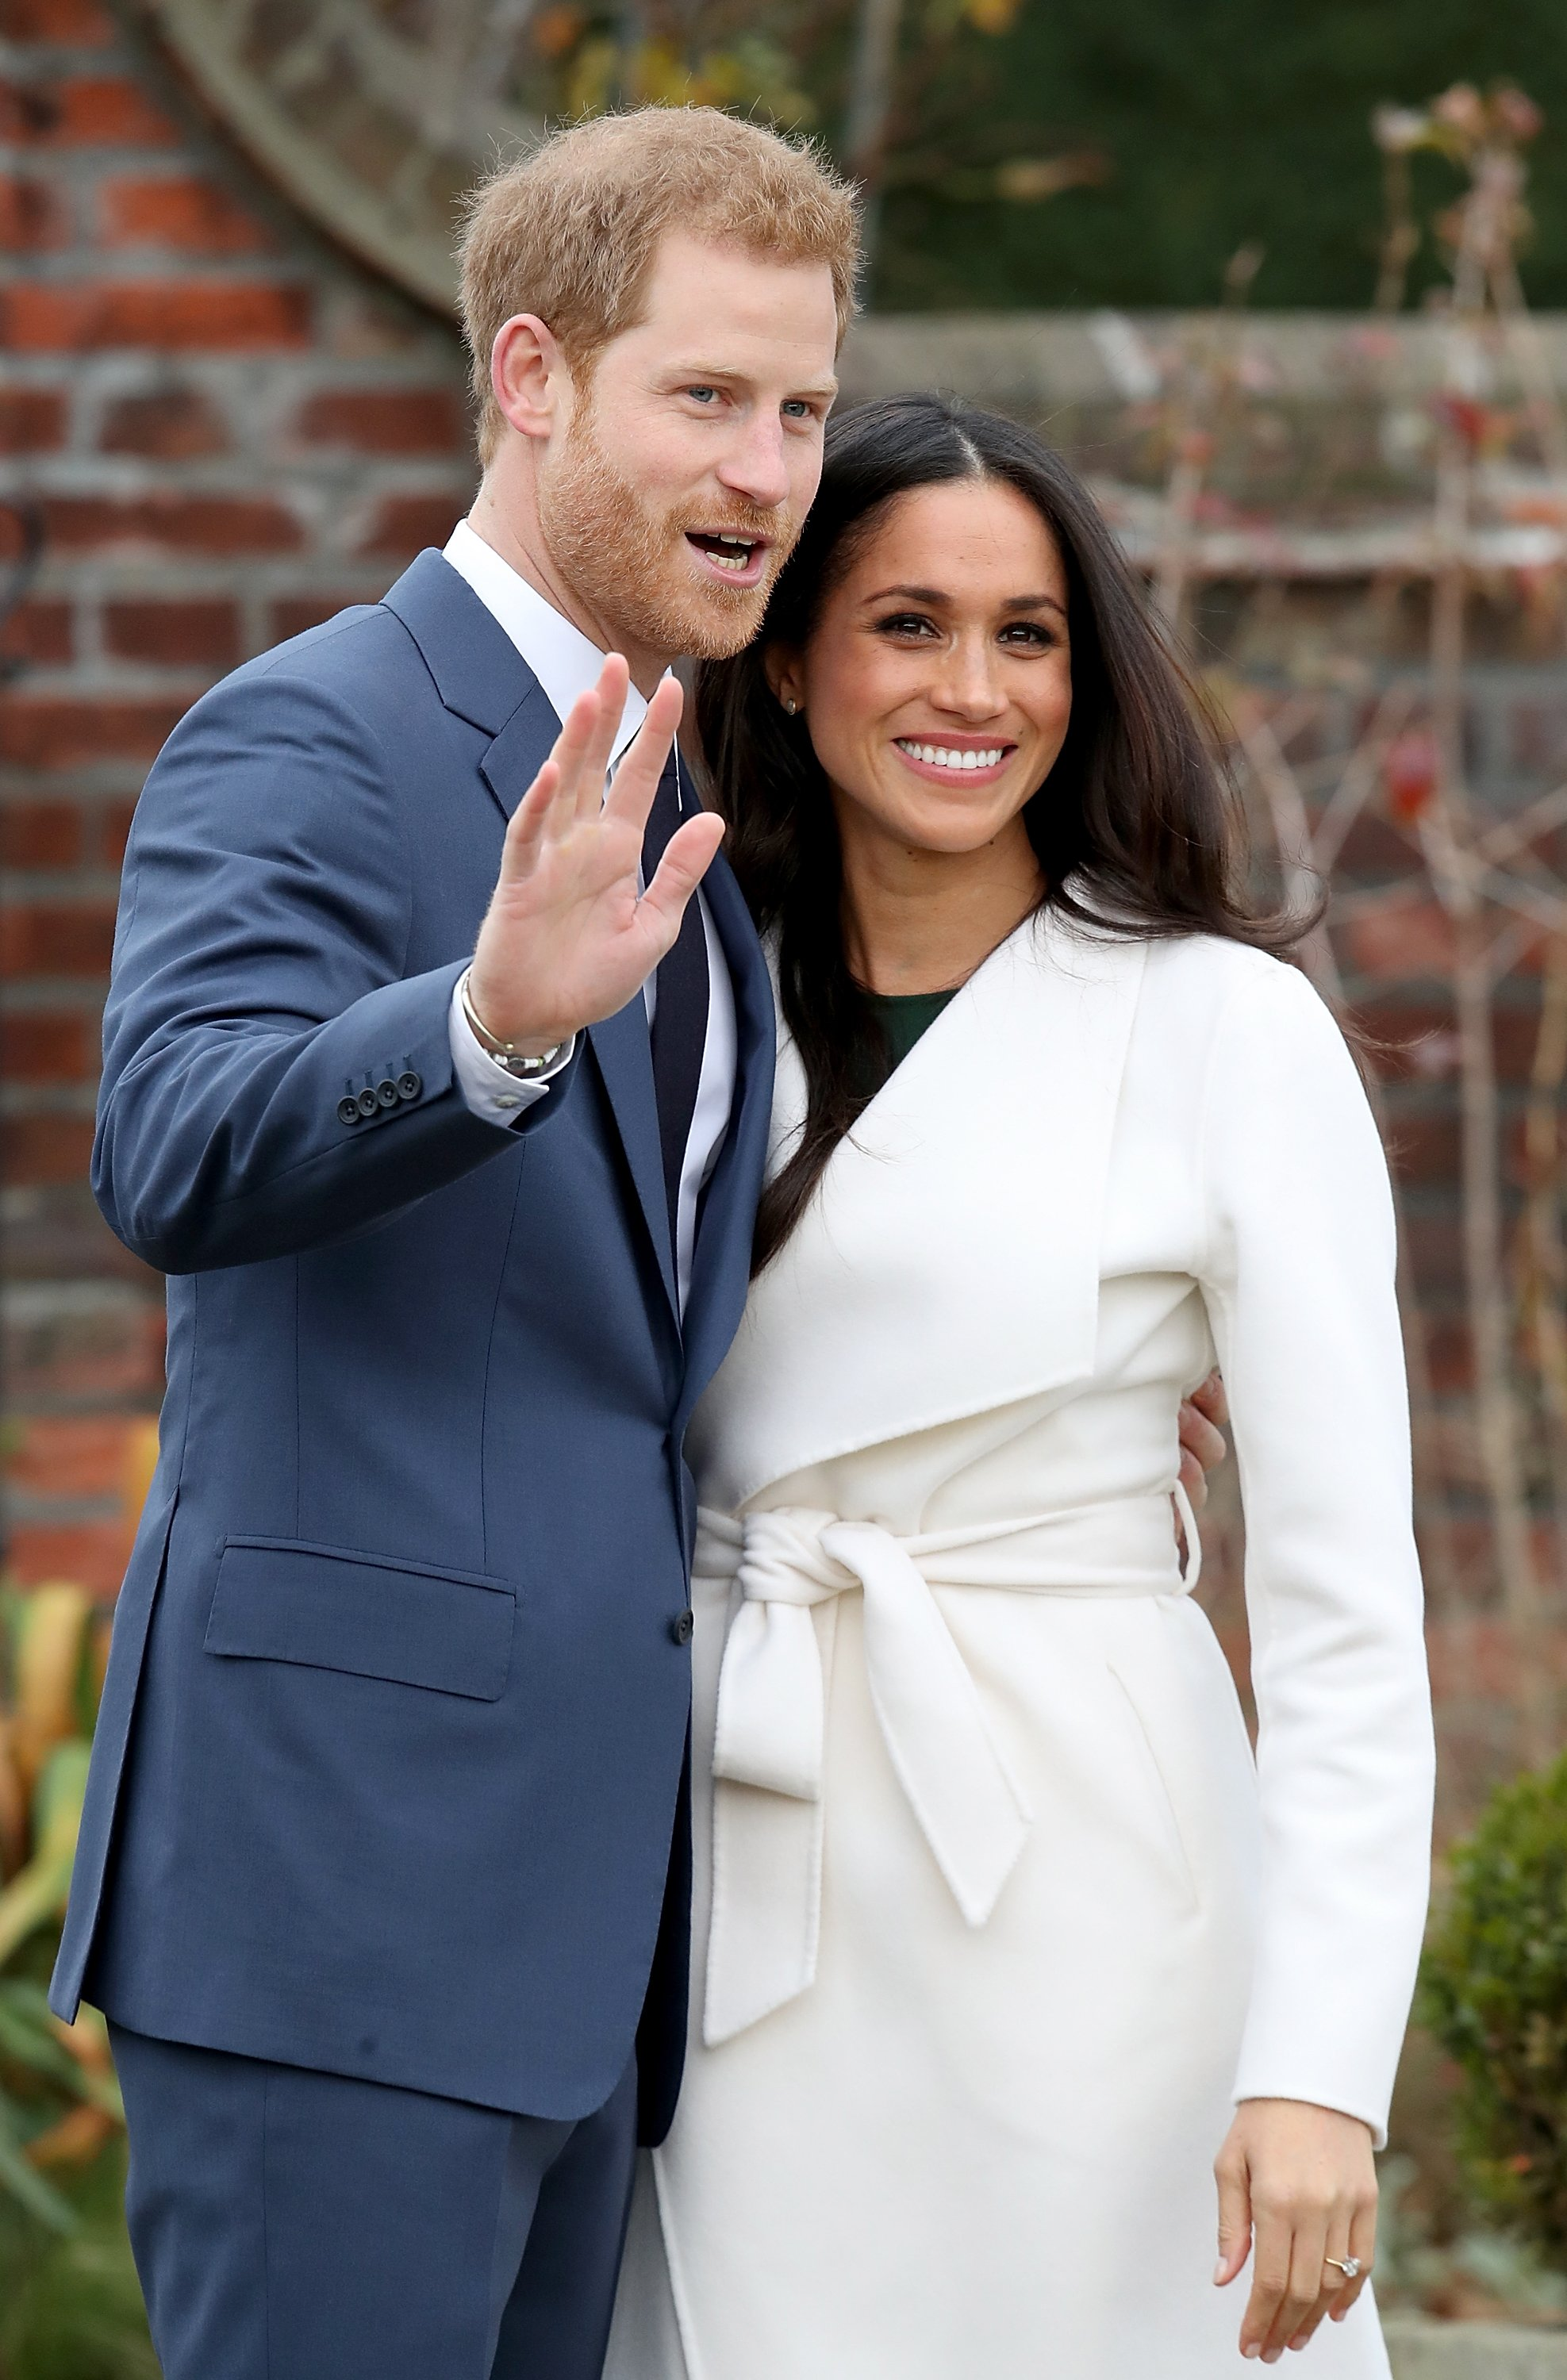 Prince Harry and Meghan Markle during an official photocall to announce their engagement at The Sunken Gardens at Kensington Palace on November 27, 2017. | Source: Getty Images